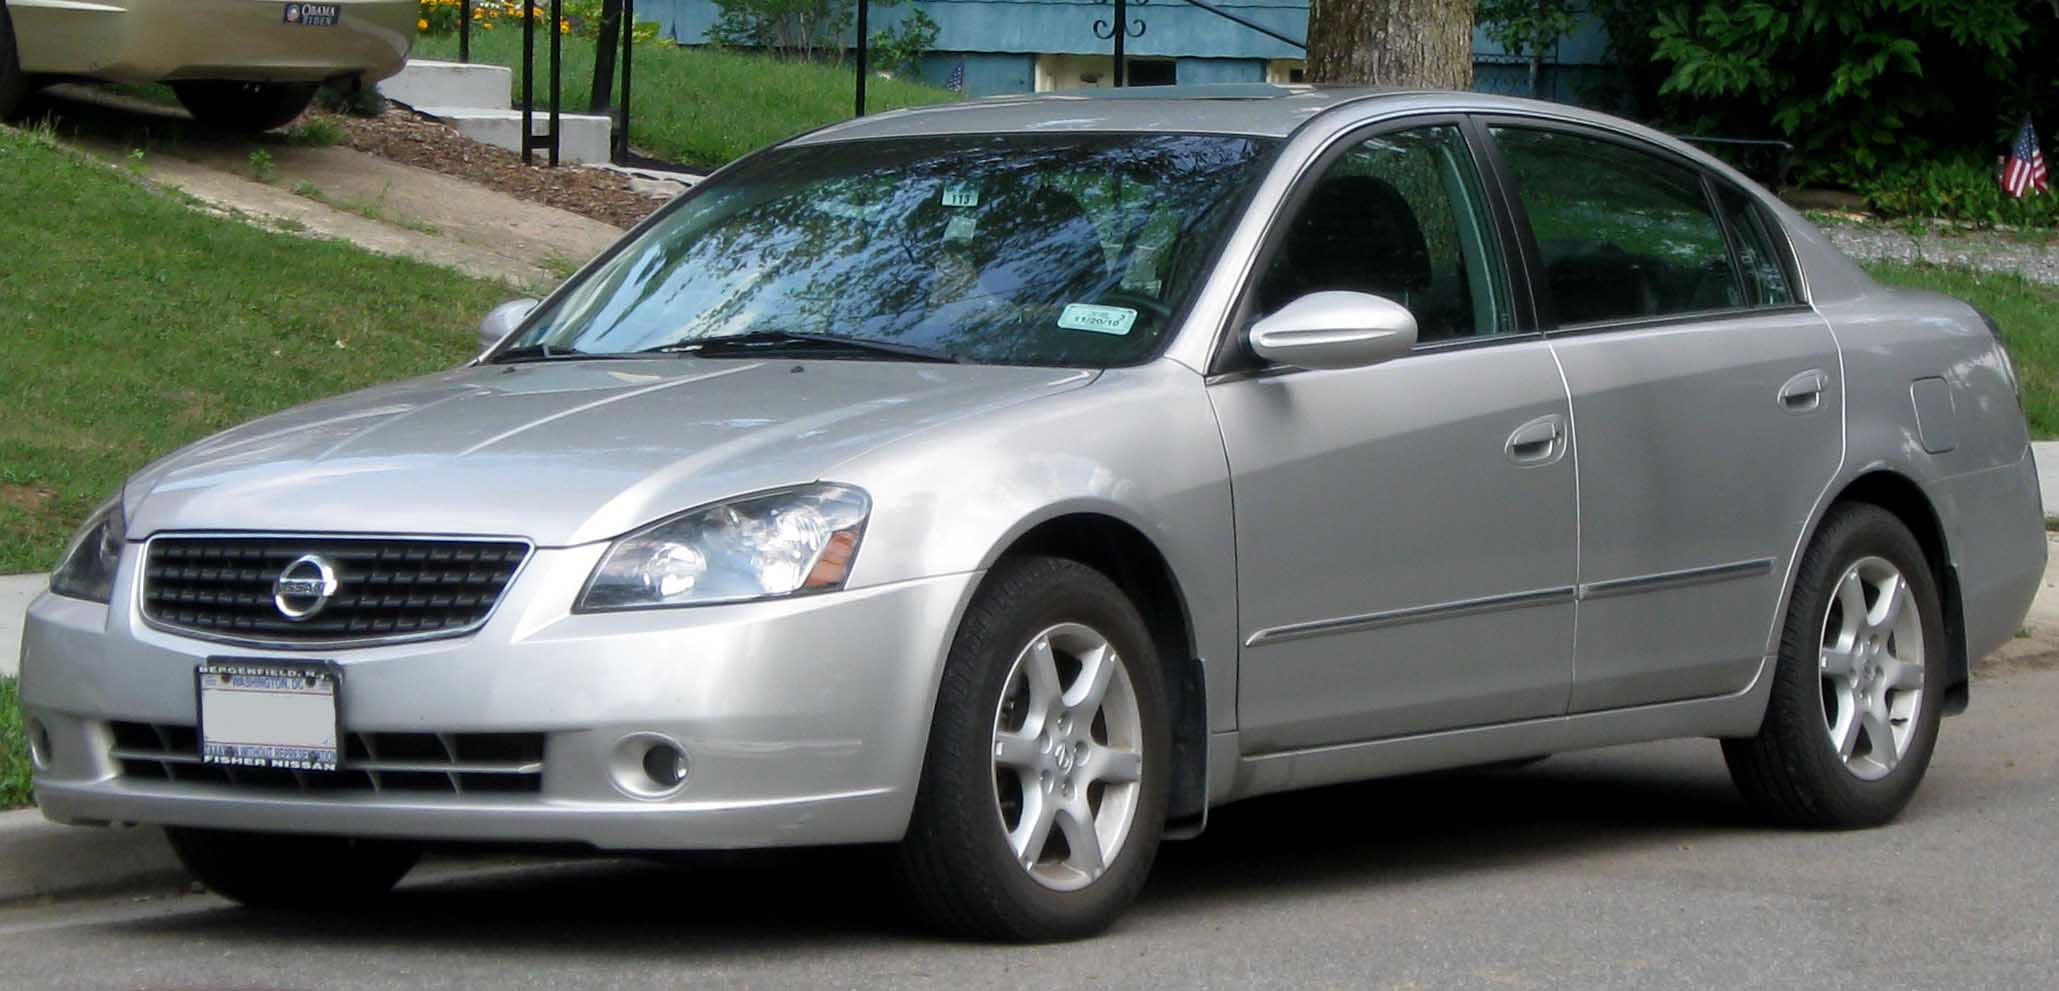 2006 nissan altima information and photos zombiedrive 2006 nissan altima 20 nissan altima 20 vanachro Choice Image